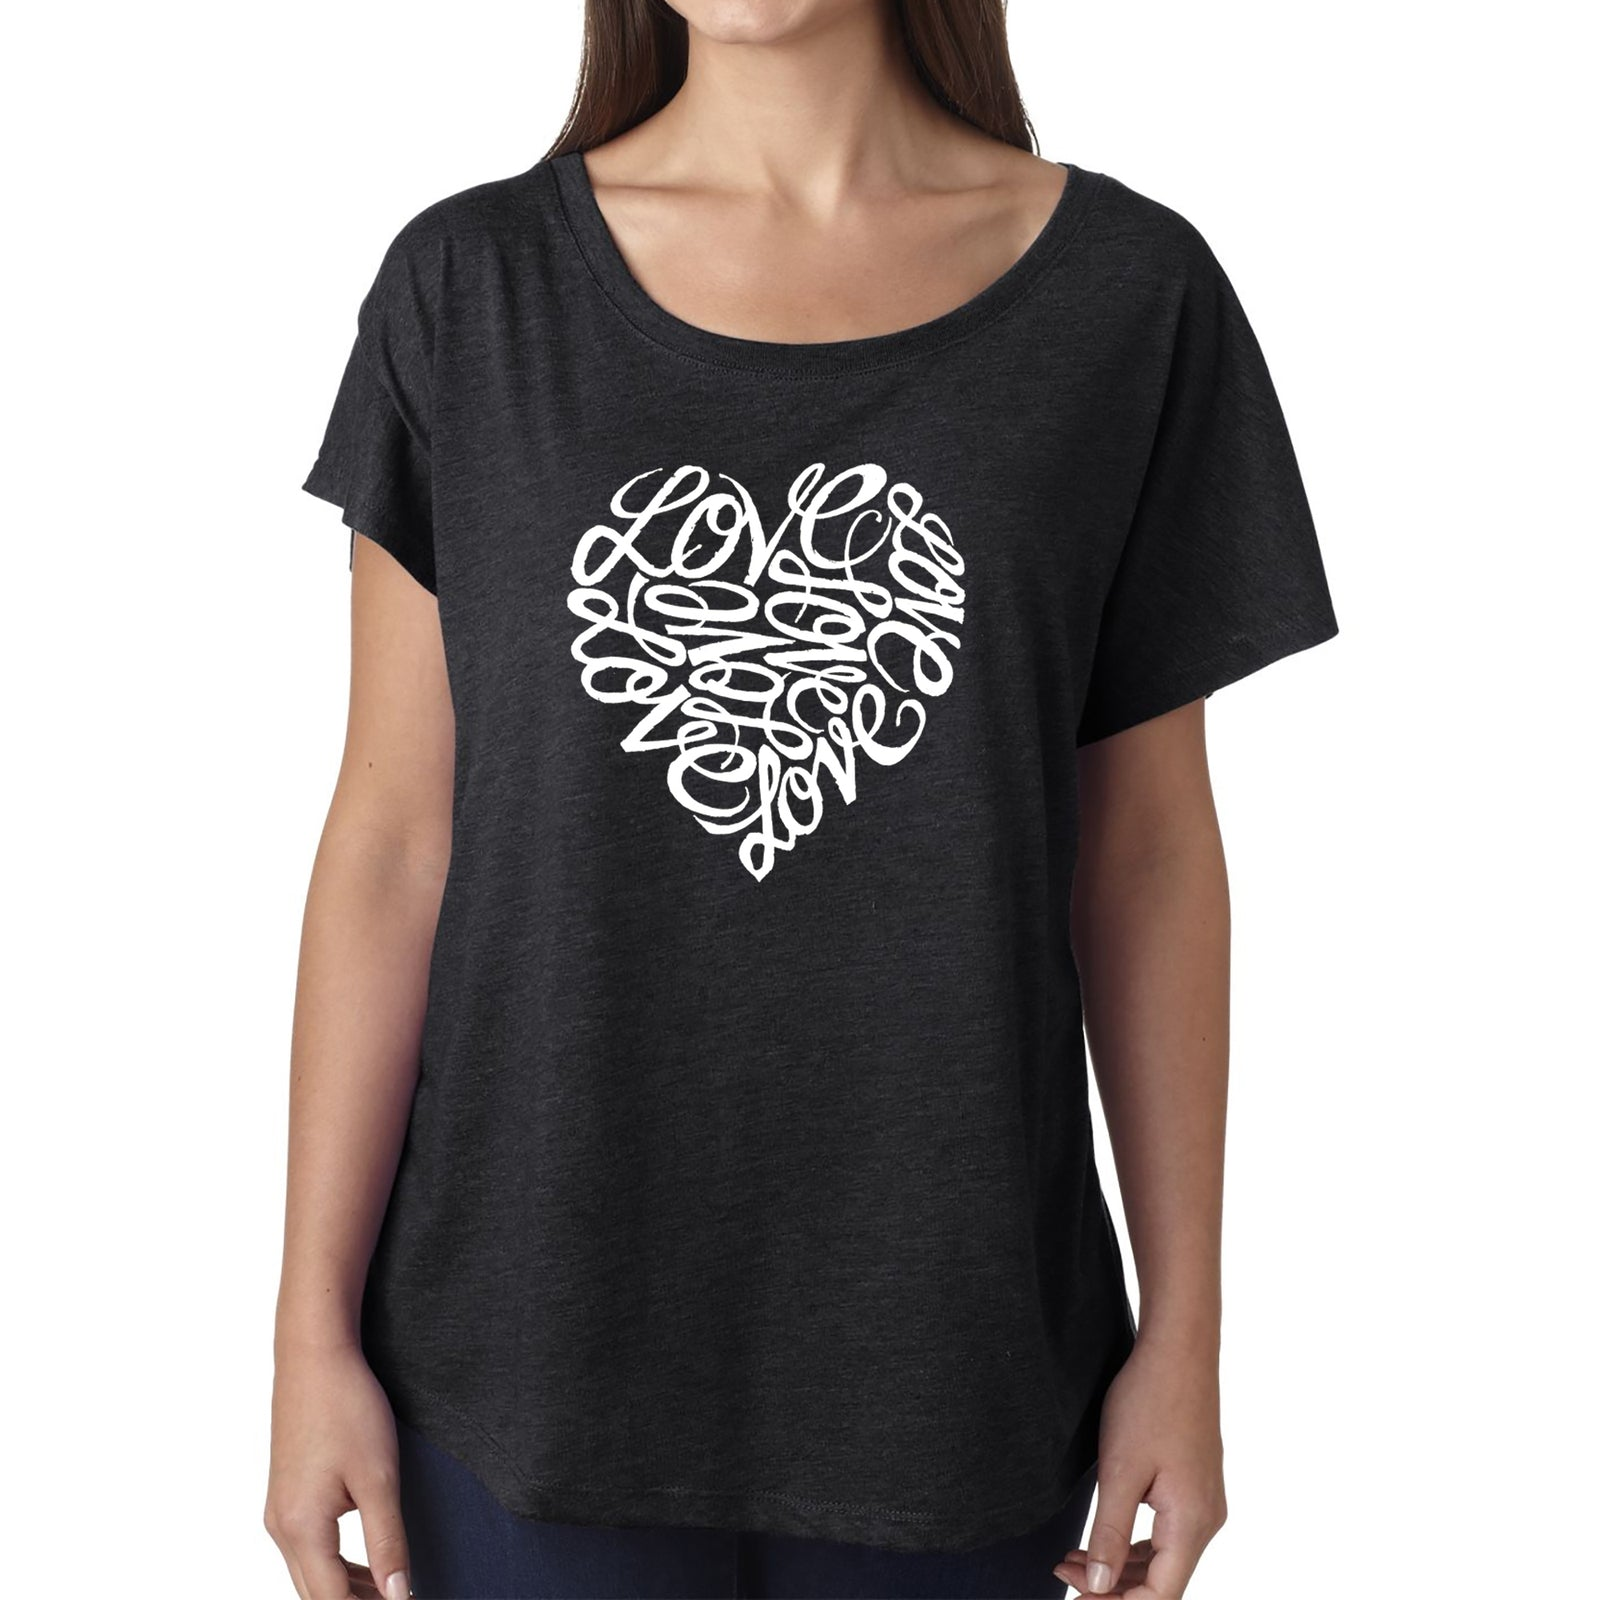 Women's Loose Fit Dolman Cut Word Art Shirt - LOVE